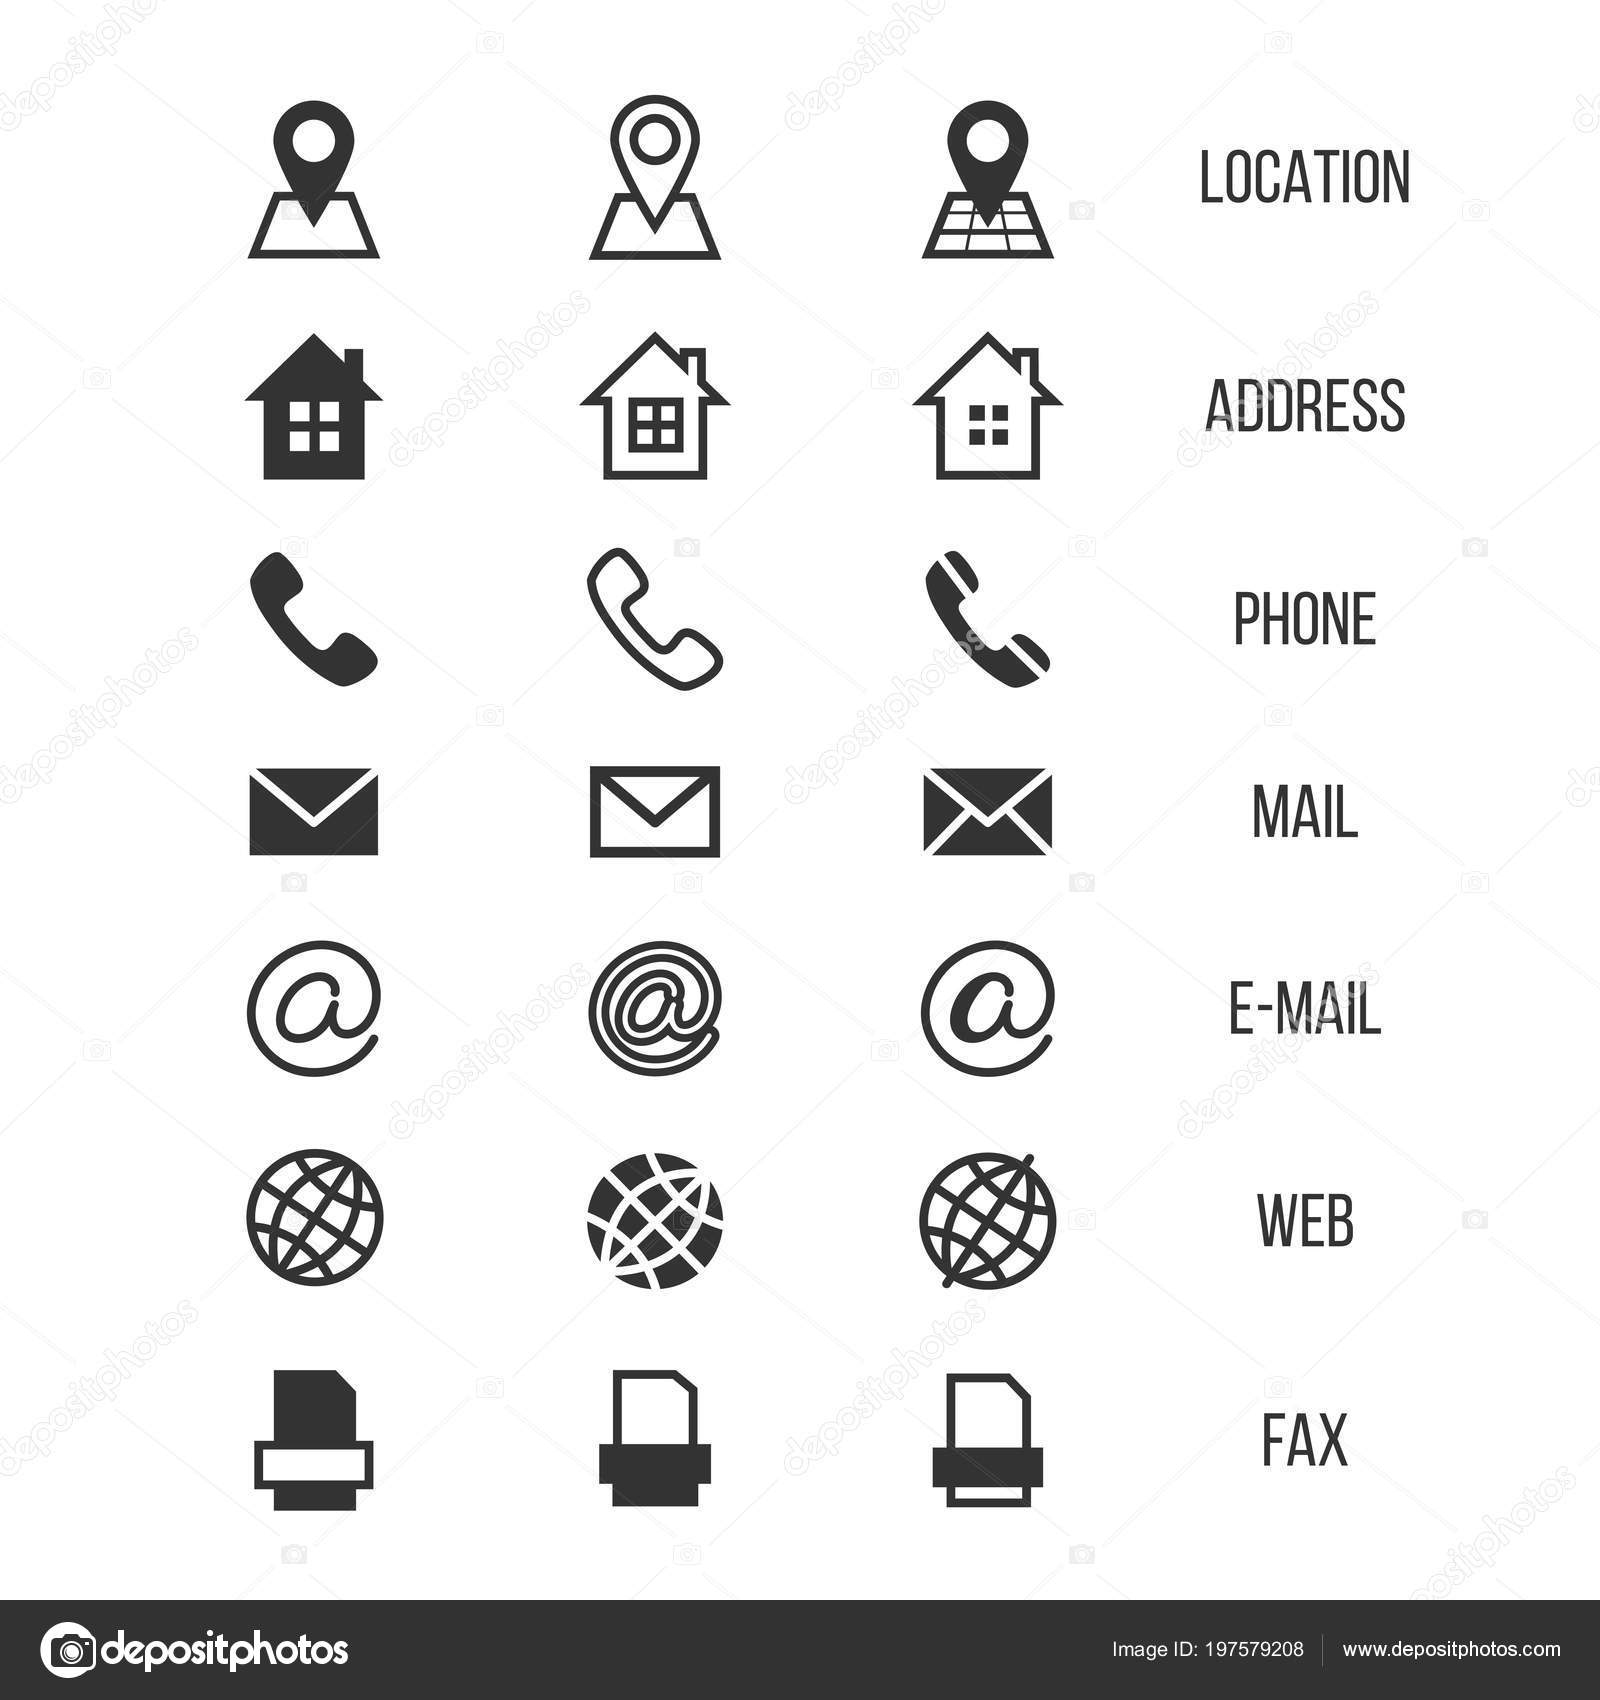 Business Card Vector Icons Home Phone Address Telephone Fax